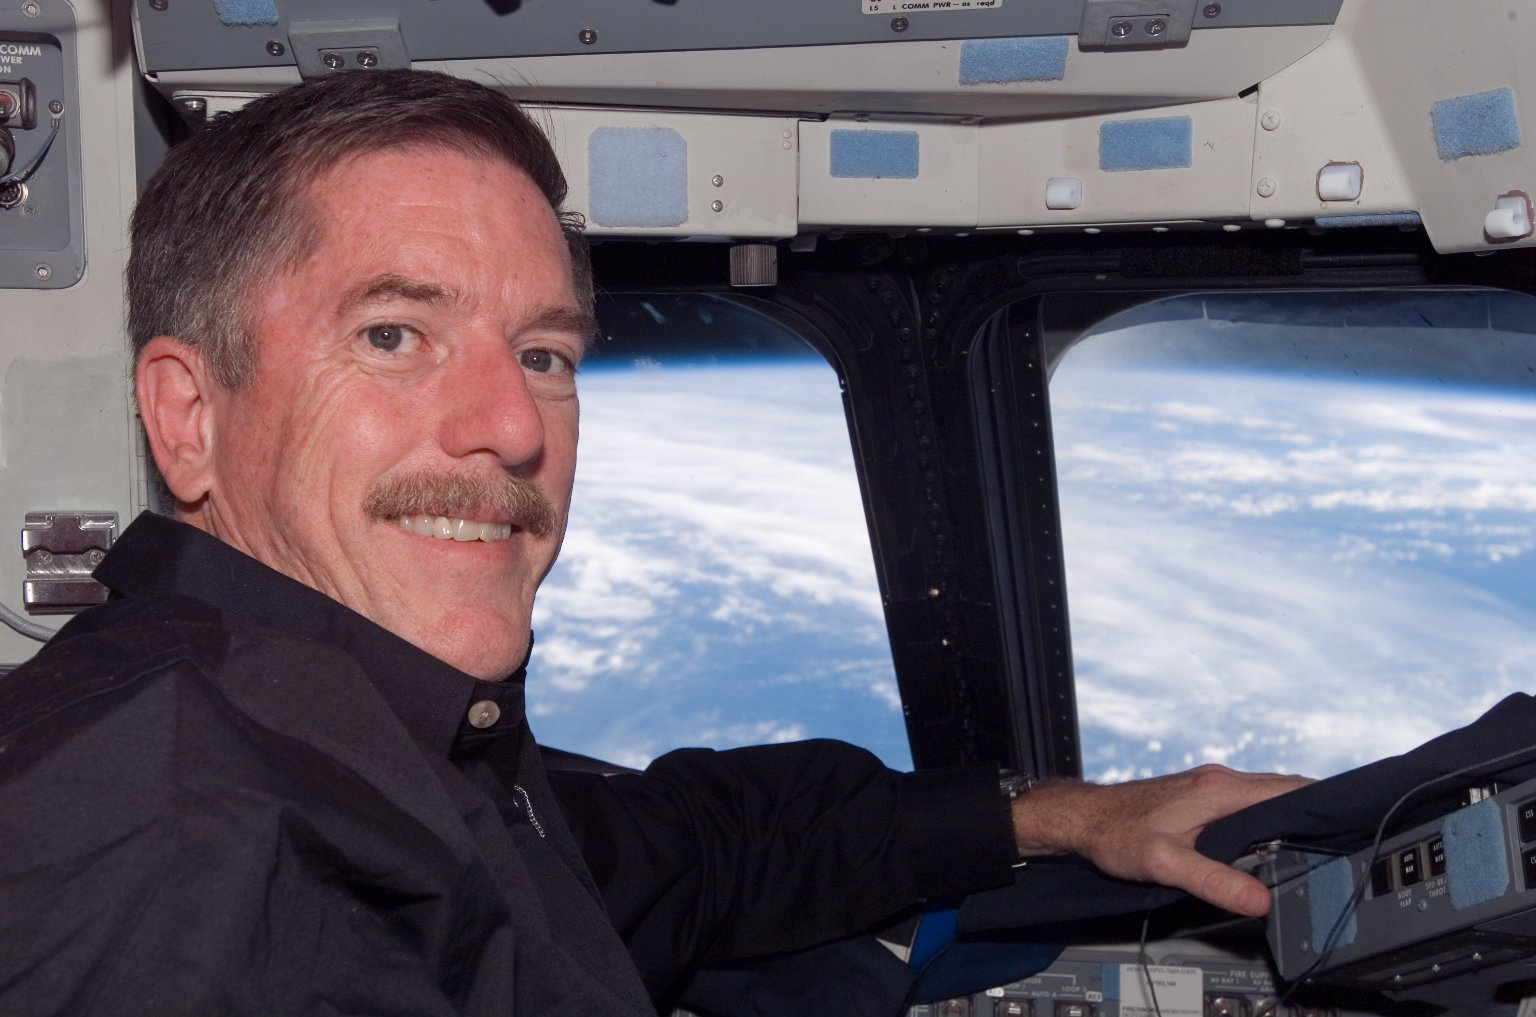 Reilly on the FD on STS-117 Space Shuttle Atlantis